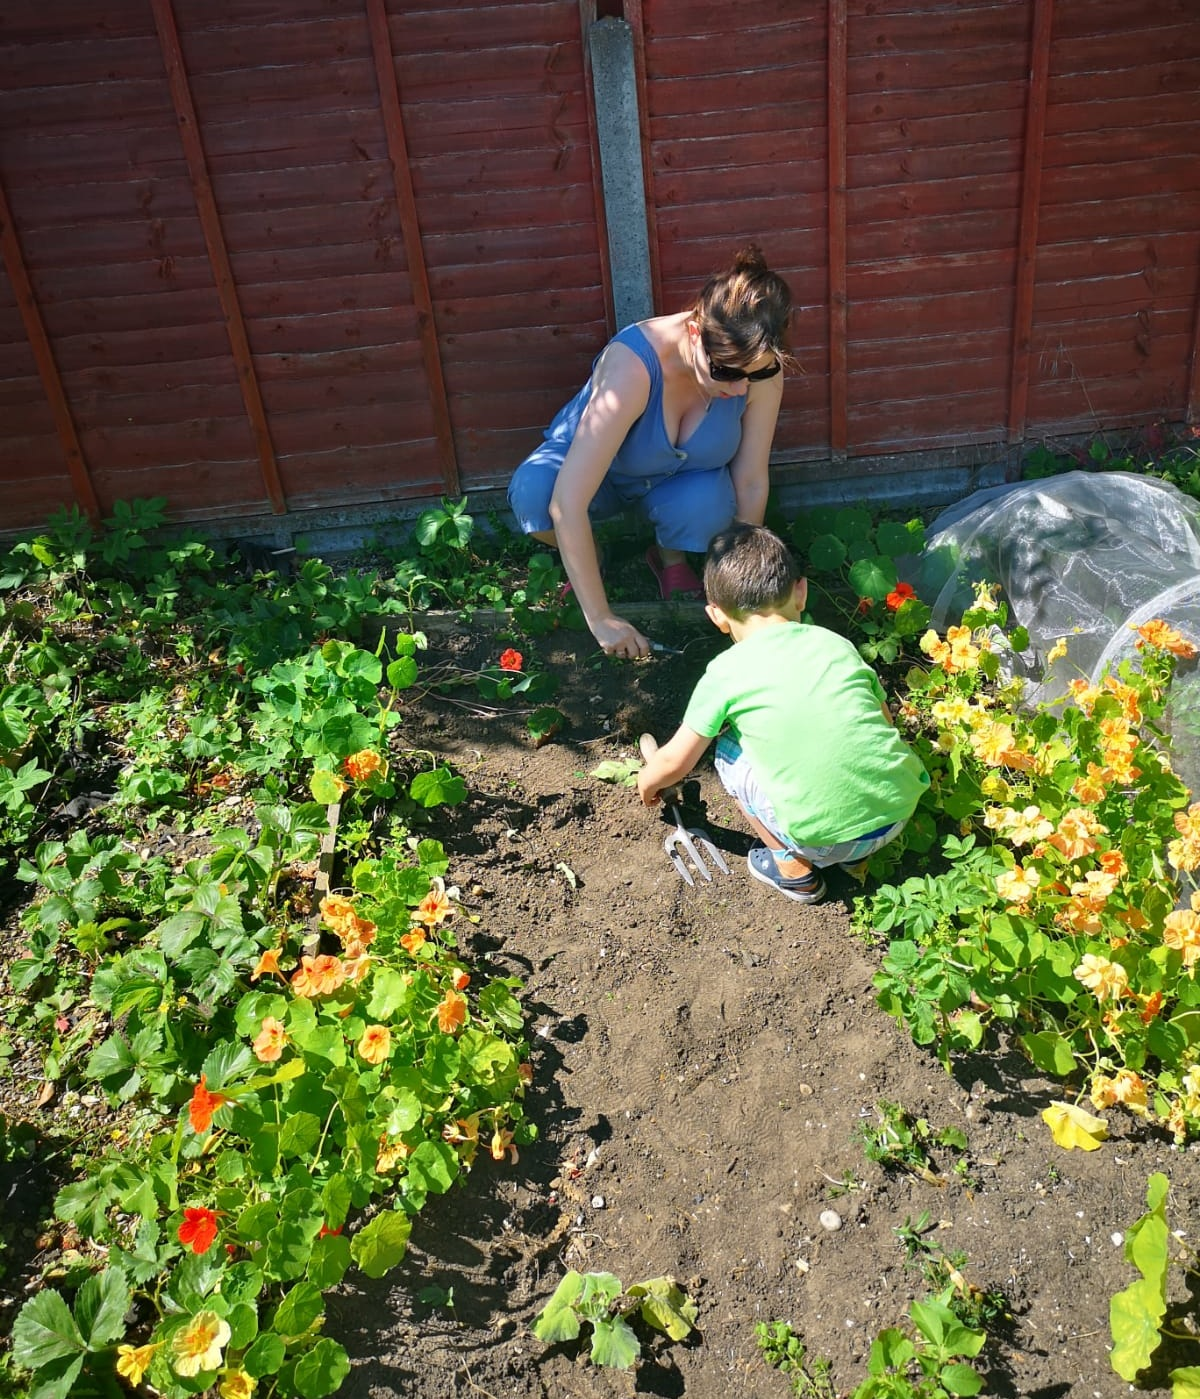 Gardening with my boy: in shot - strawberries, nasturtiums, potato plants, broccoli and the odd weed!